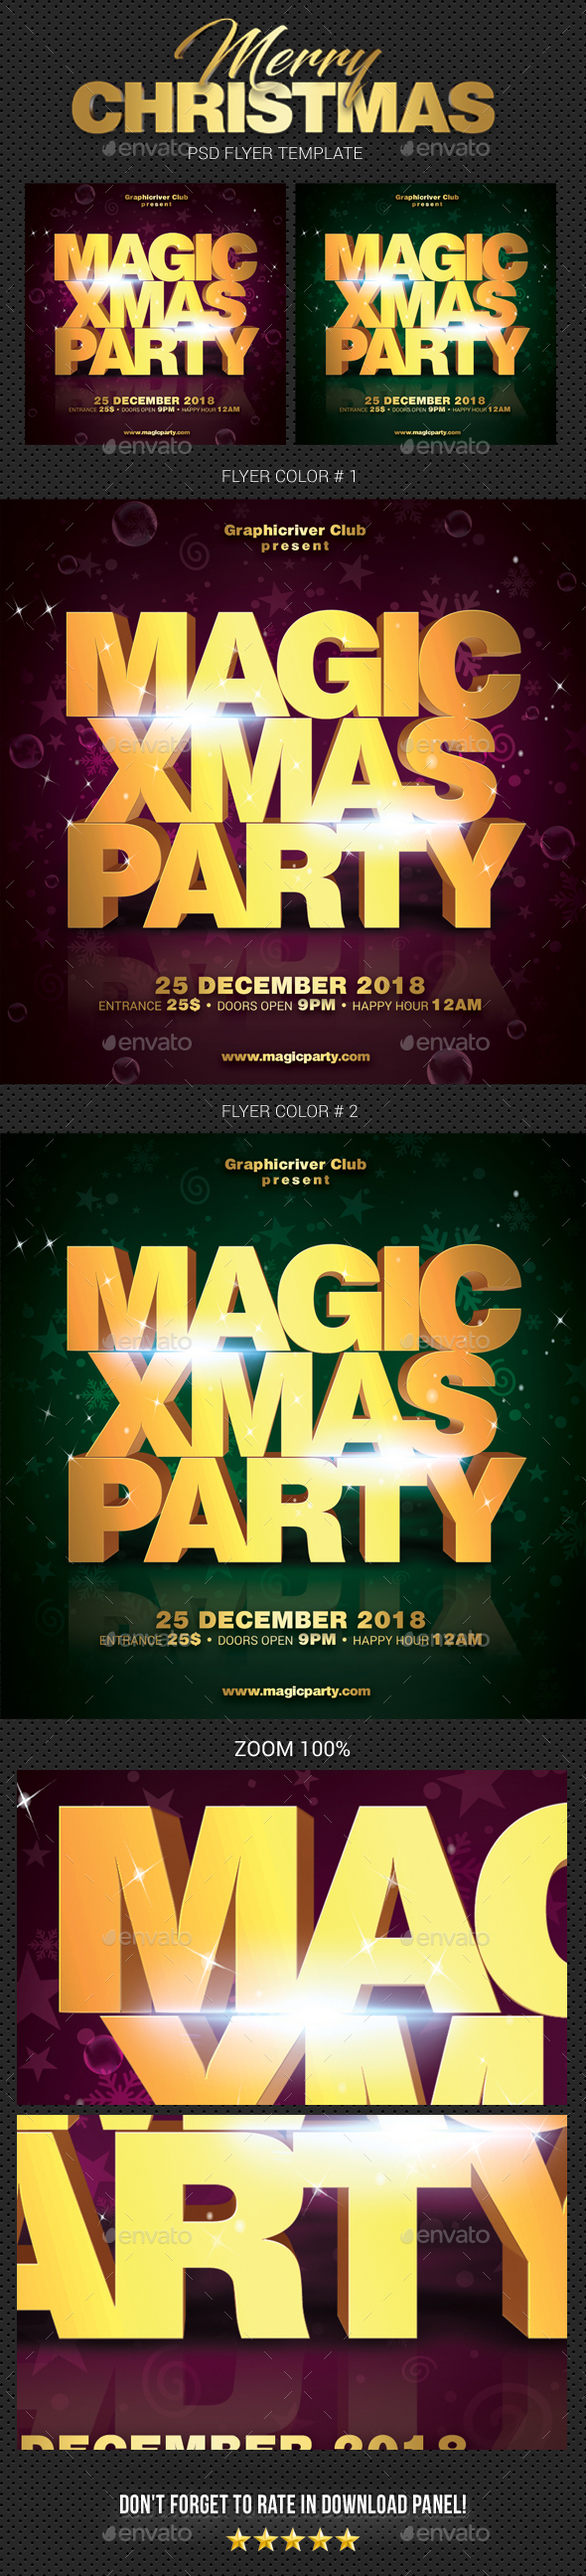 GraphicRiver Merry Christmas Party Flyer 06 21051550